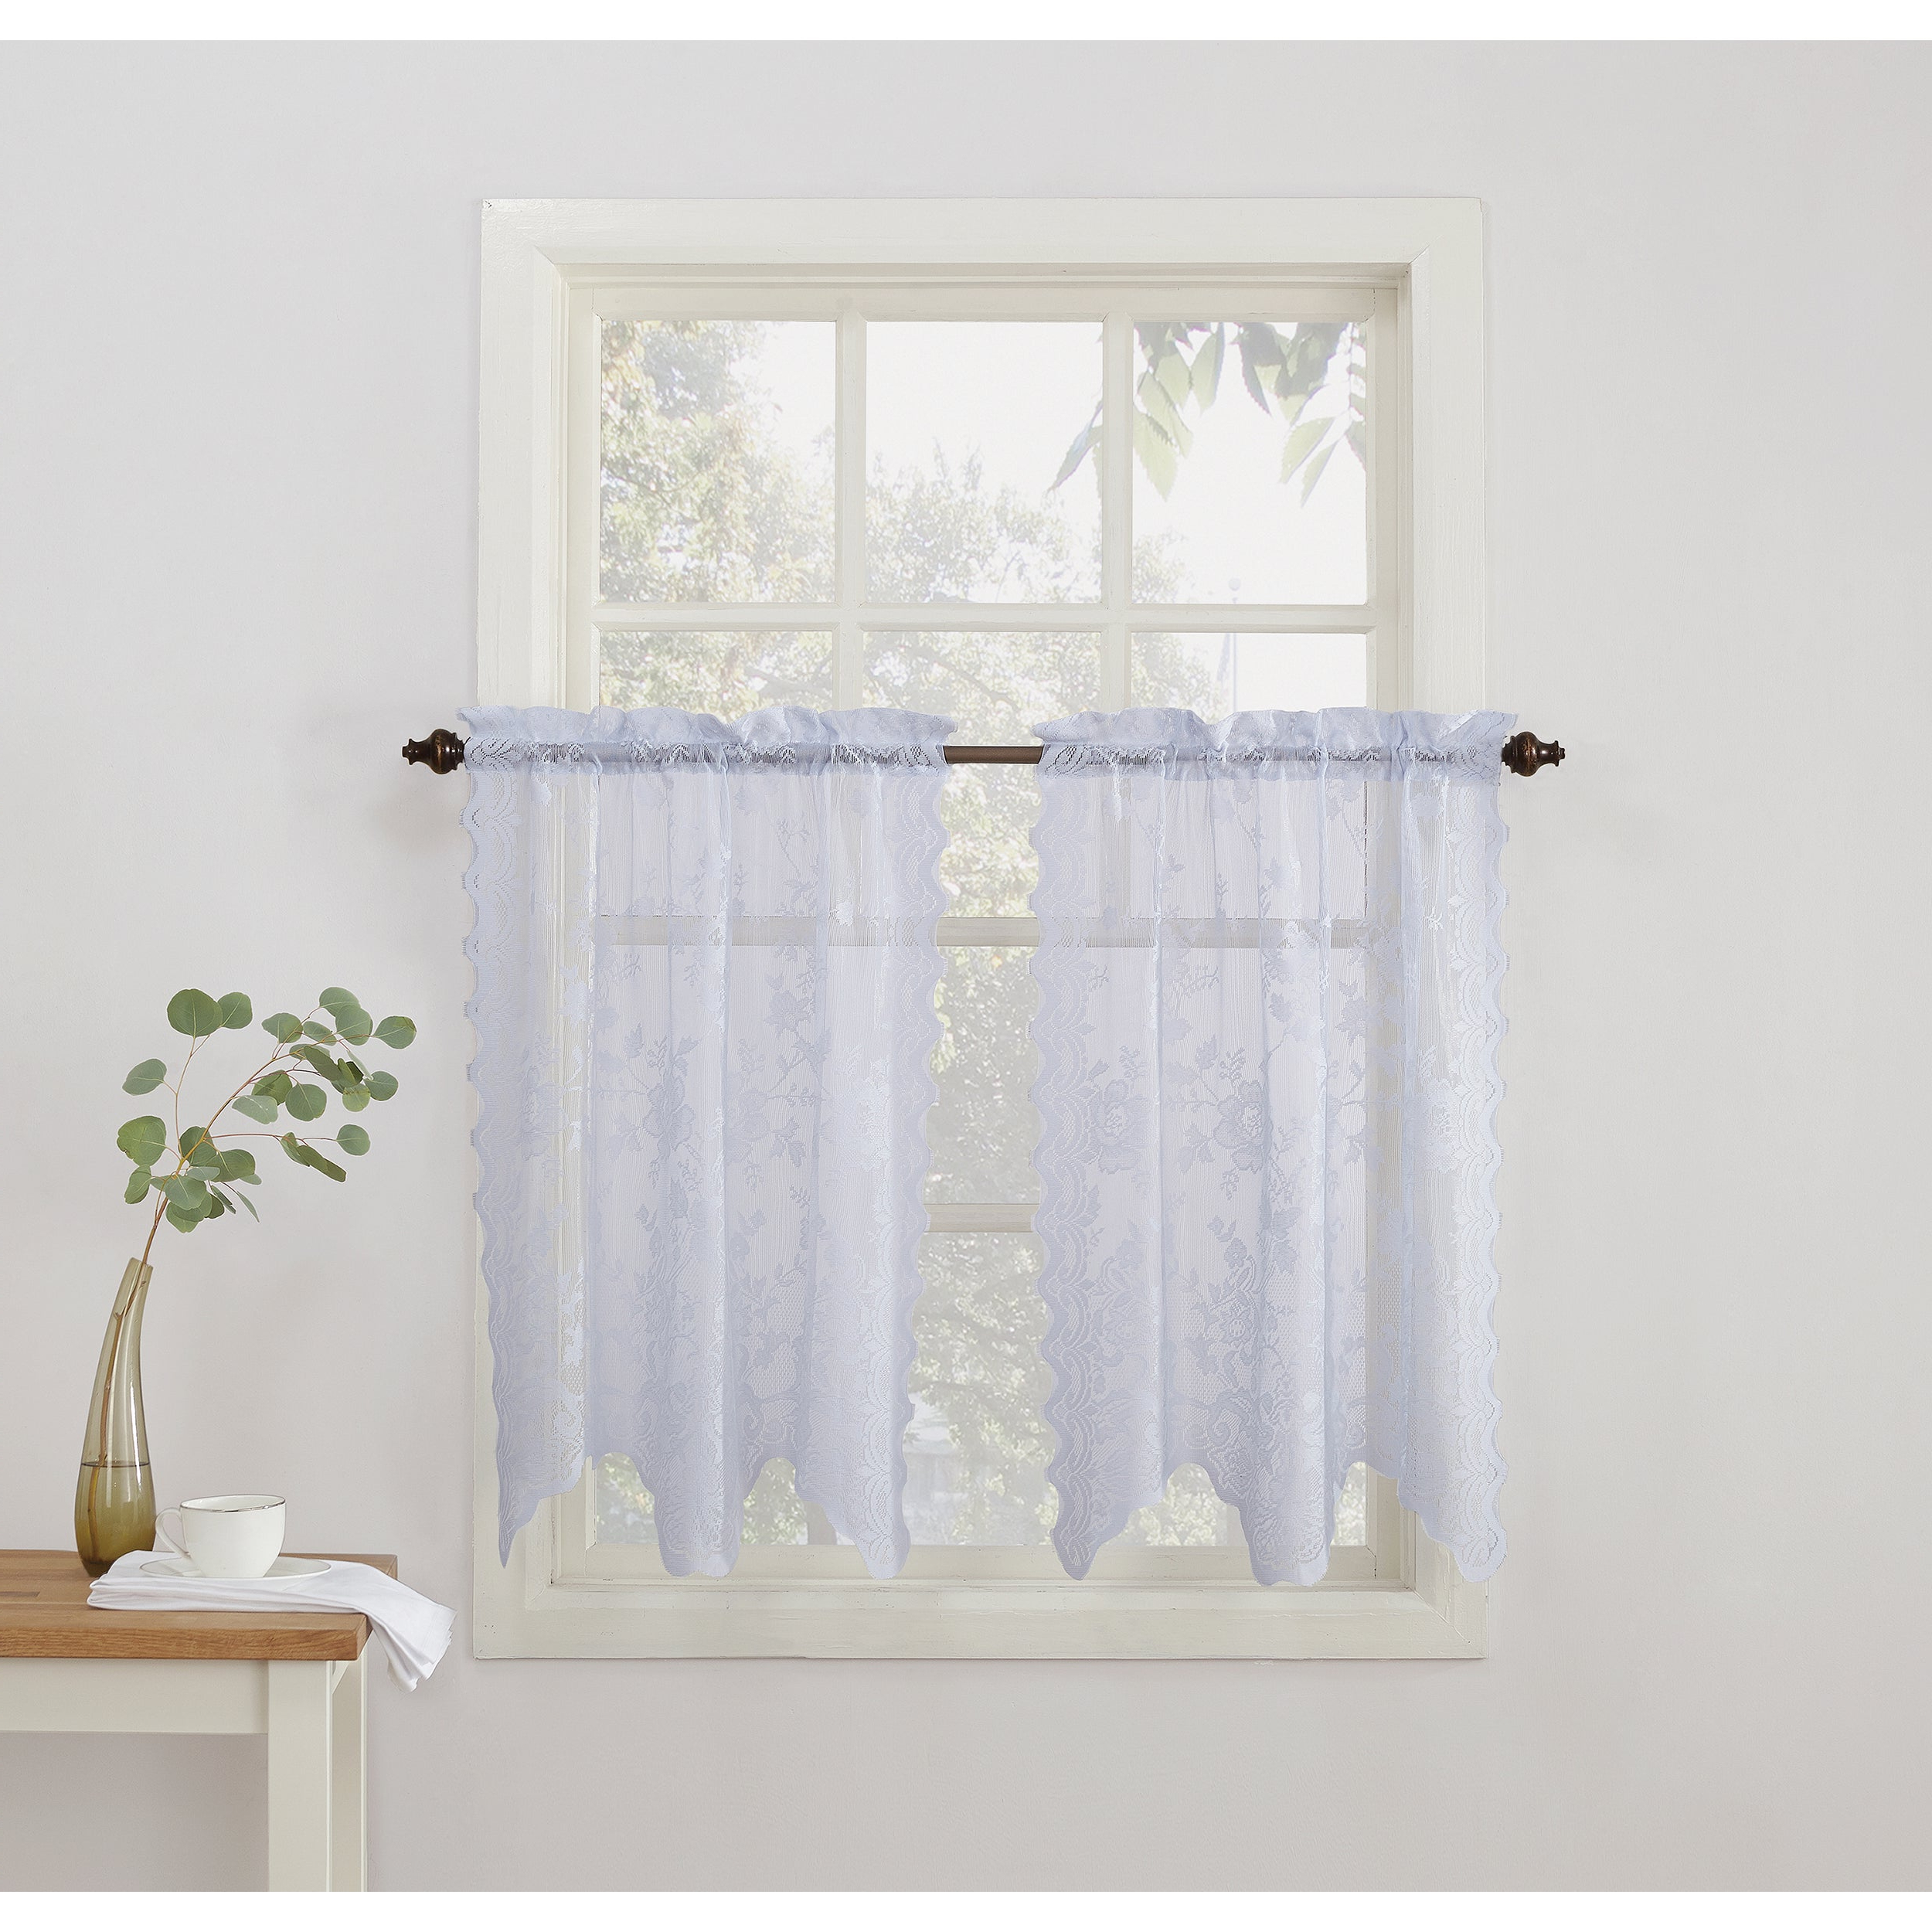 Famous White Knit Lace Bird Motif Window Curtain Tiers For No (View 5 of 20)